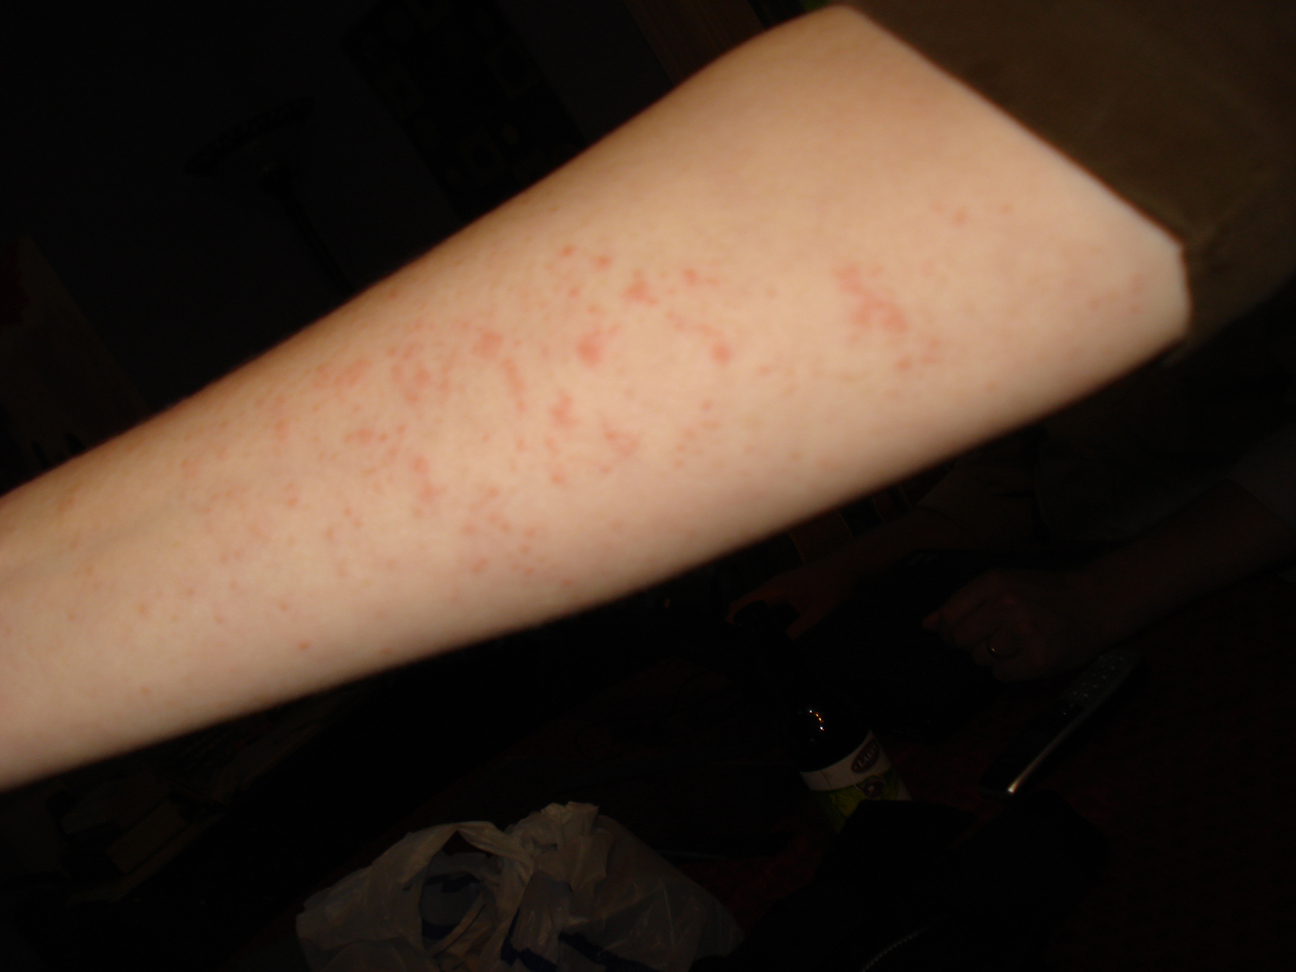 Small, itchy bumps on forearm (rash?) - Dermatology - MedHelp